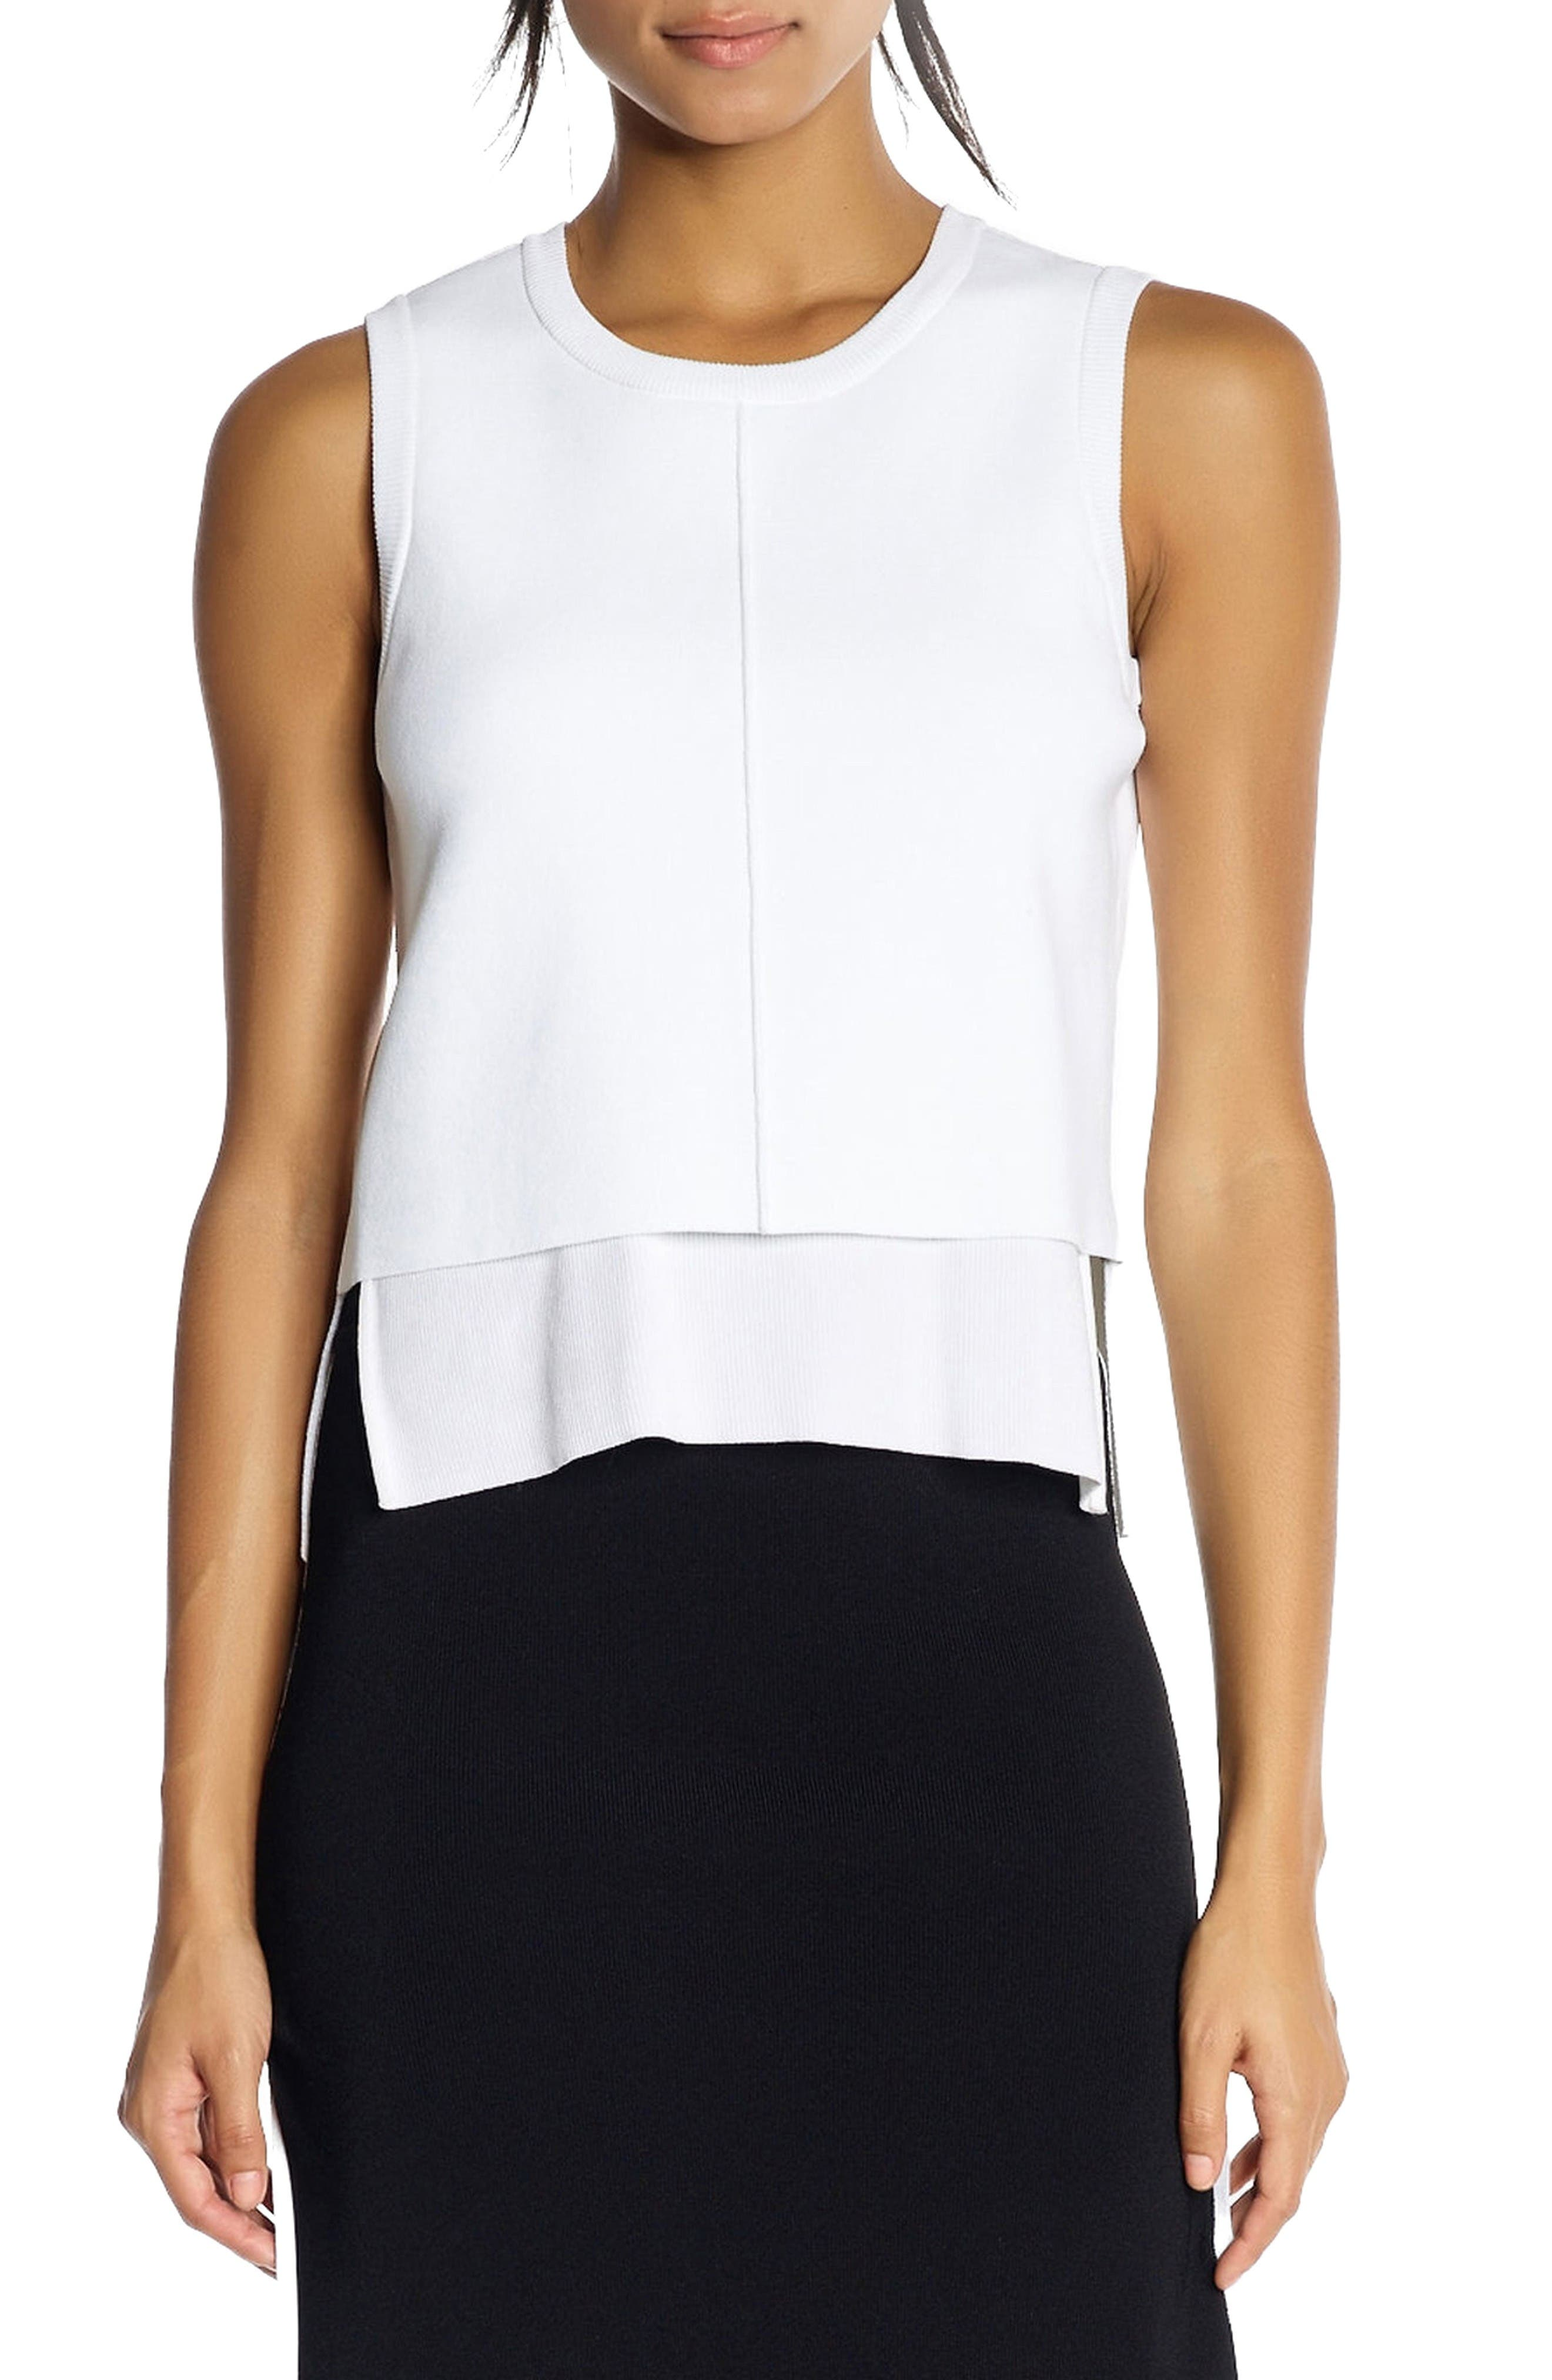 Alternate Image 1 Selected - KENDALL + KYLIE Layered Split Back Tank